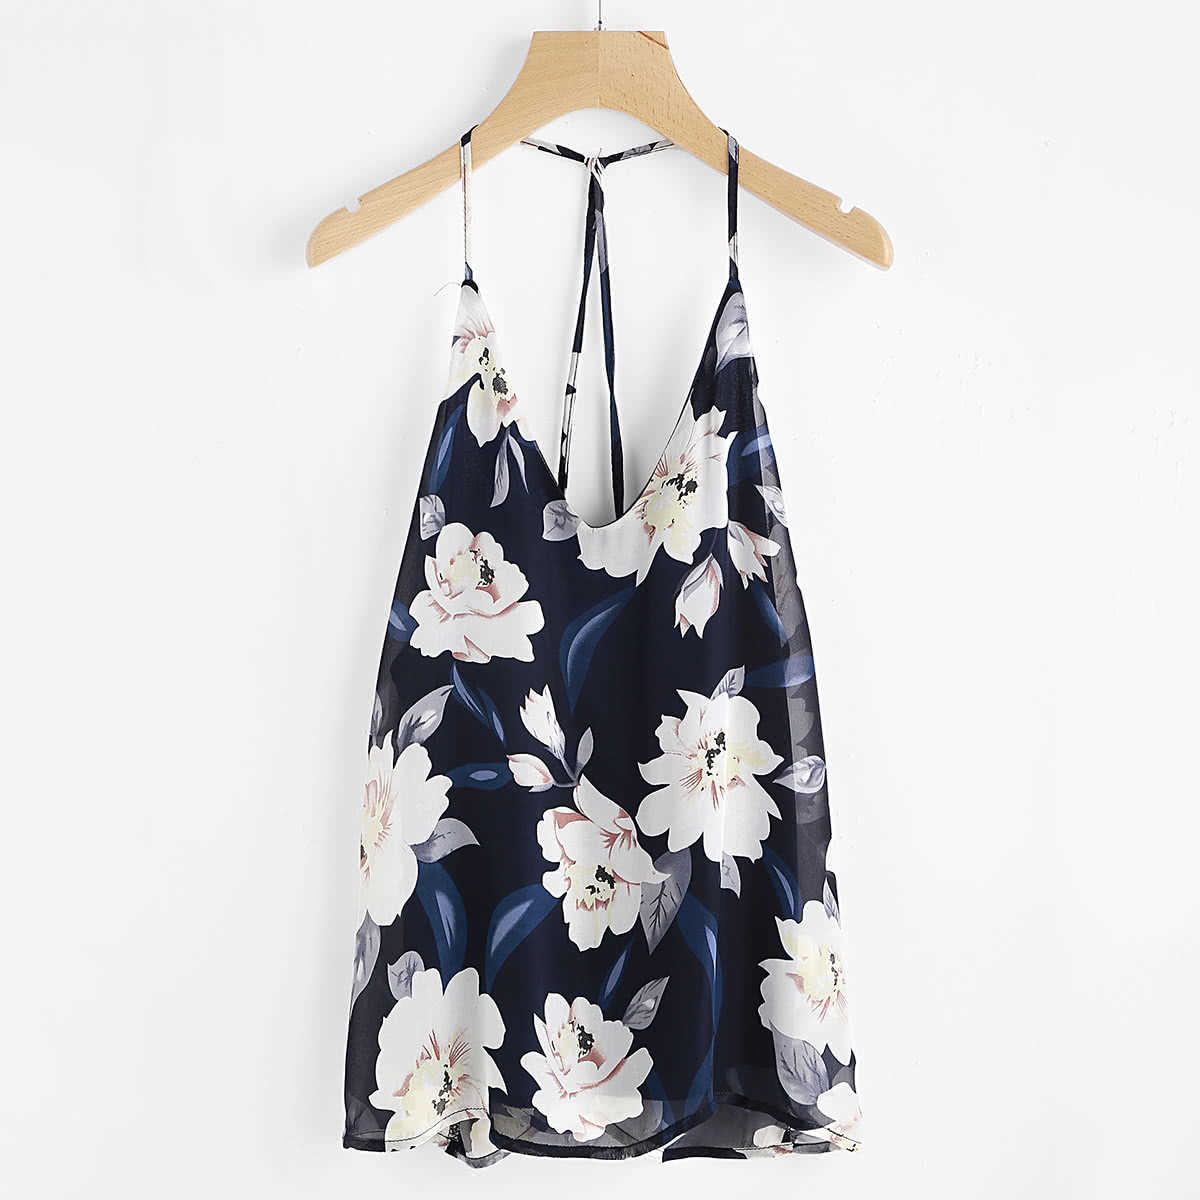 Florals Backless Halter Top in Multicolor by ROMWE on GOOFASH